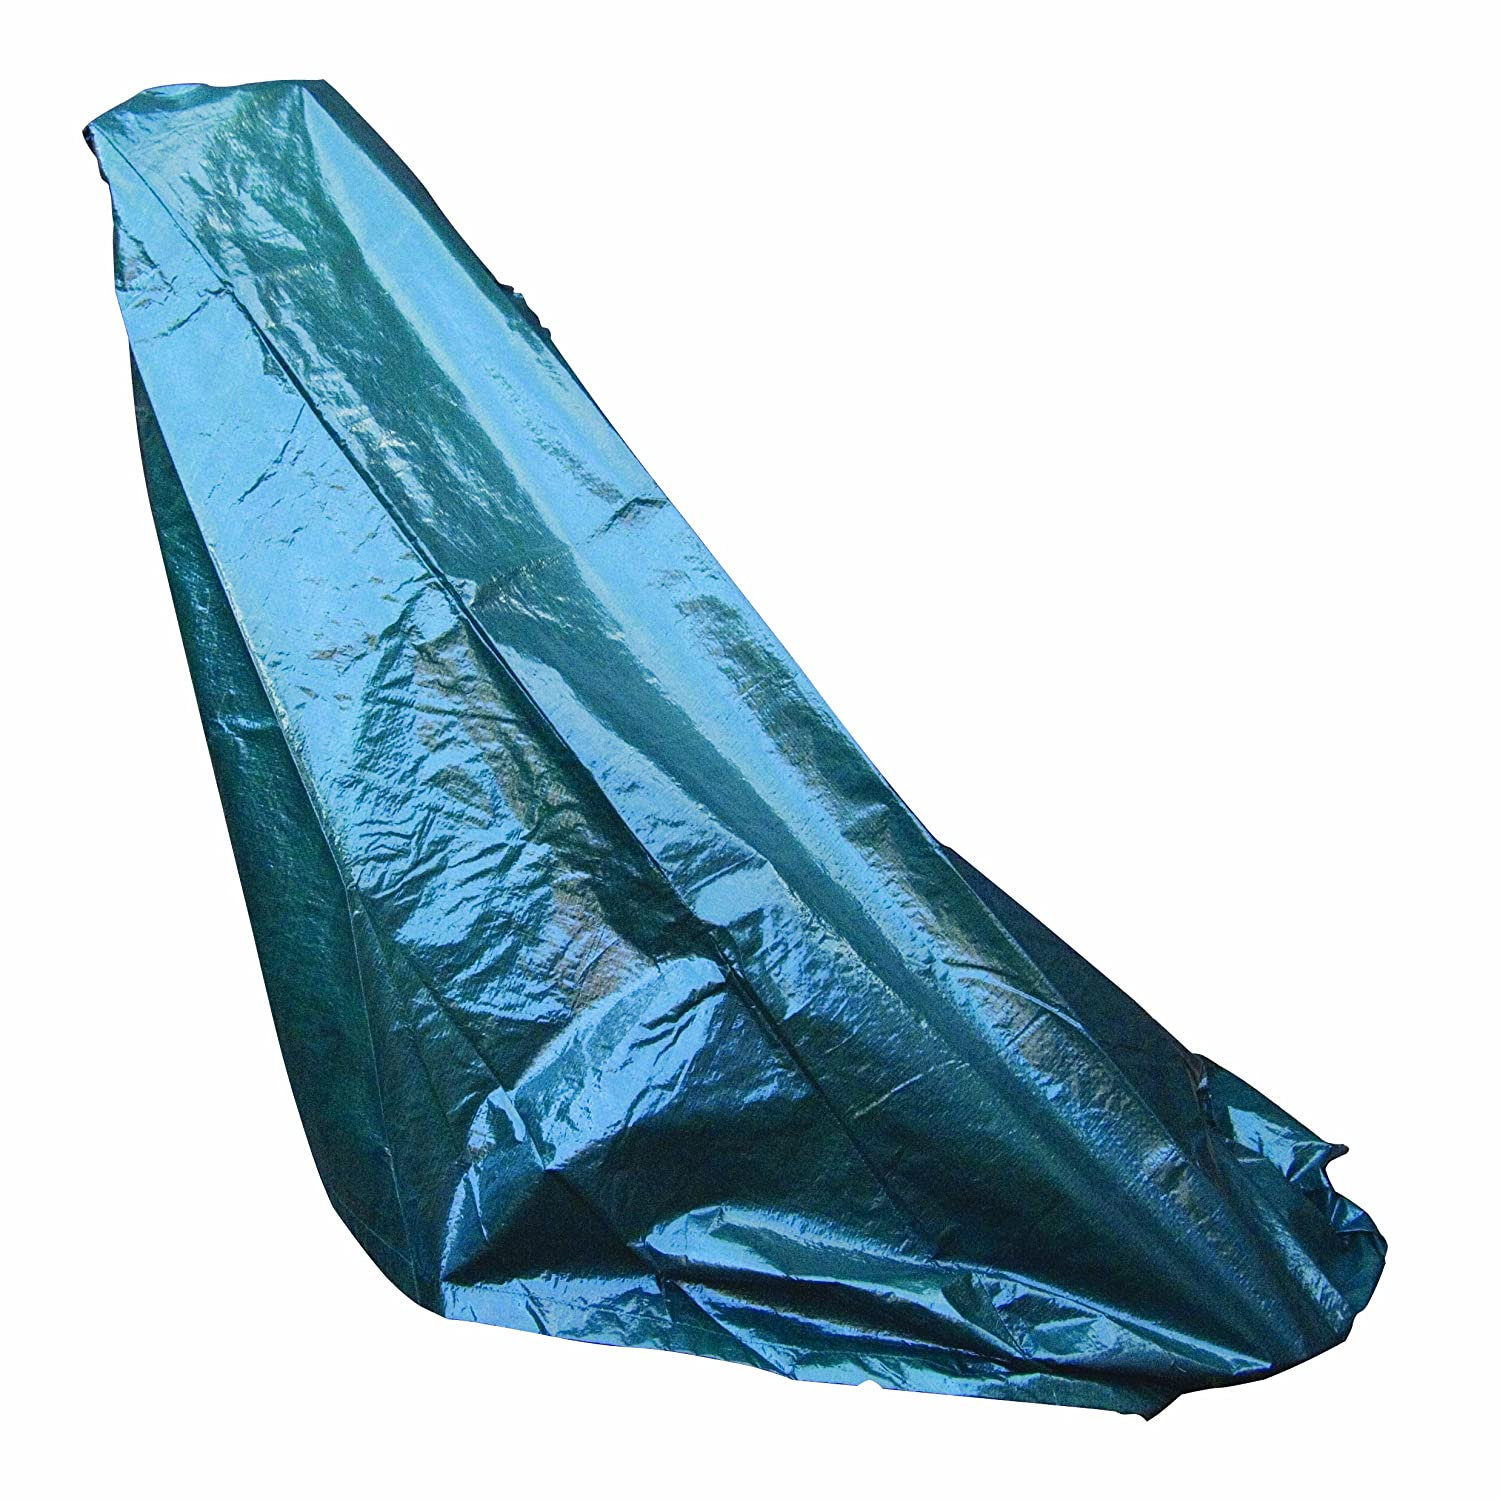 Silverline 410810 Lawn Mower Cover, 1000 mm x 970 mm x 500 mm by Silverline